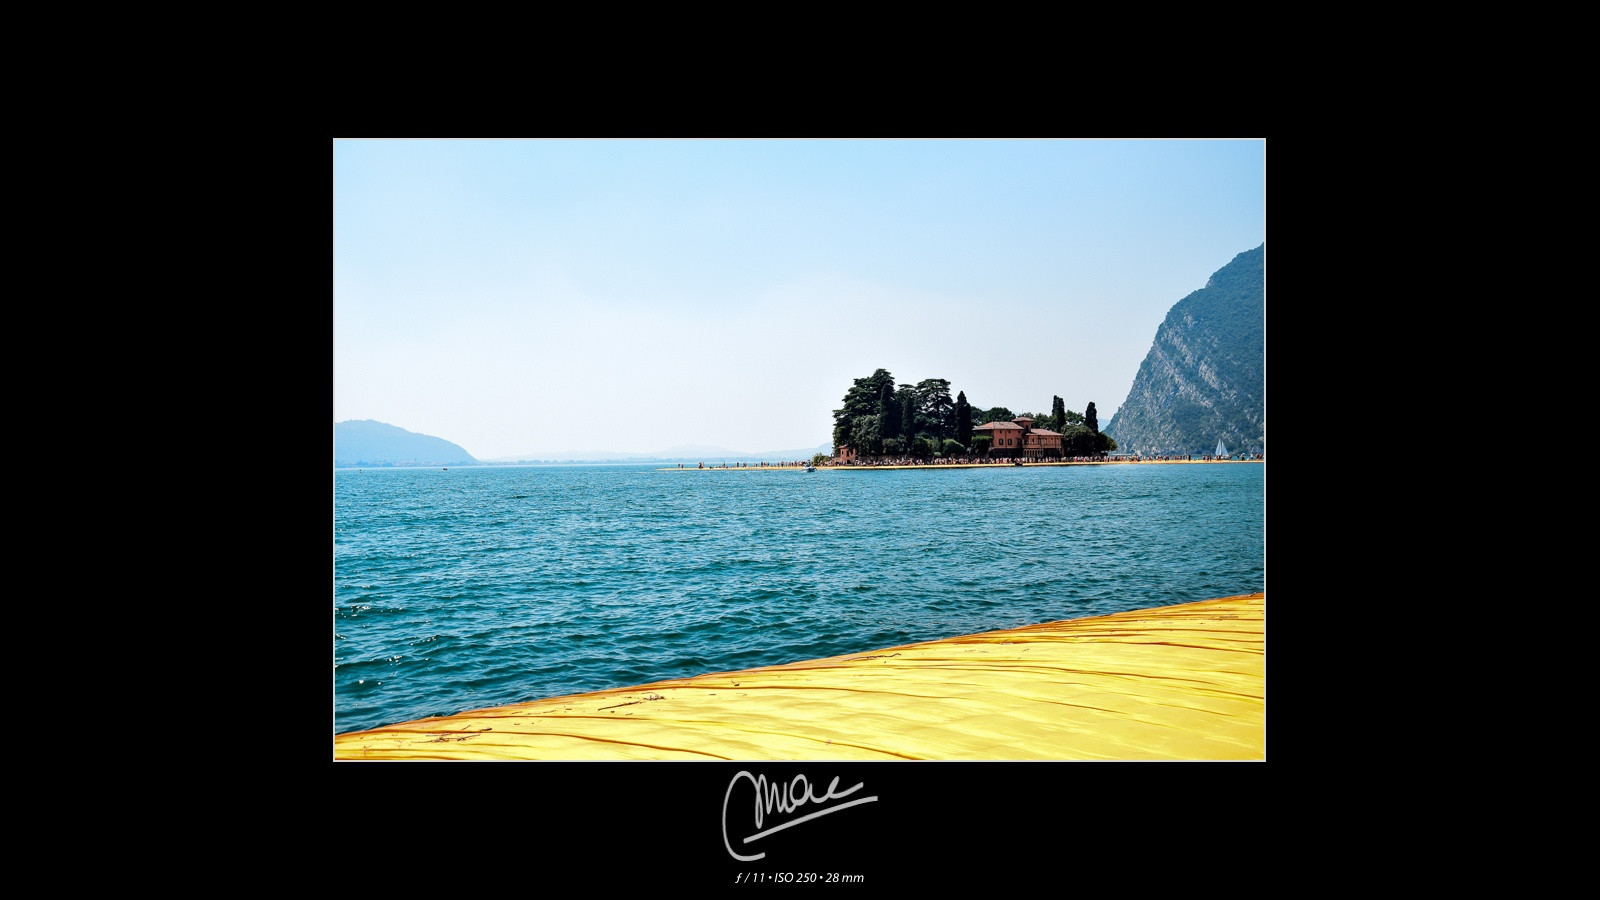 The Floating Piers #7 by Marco Andreazza